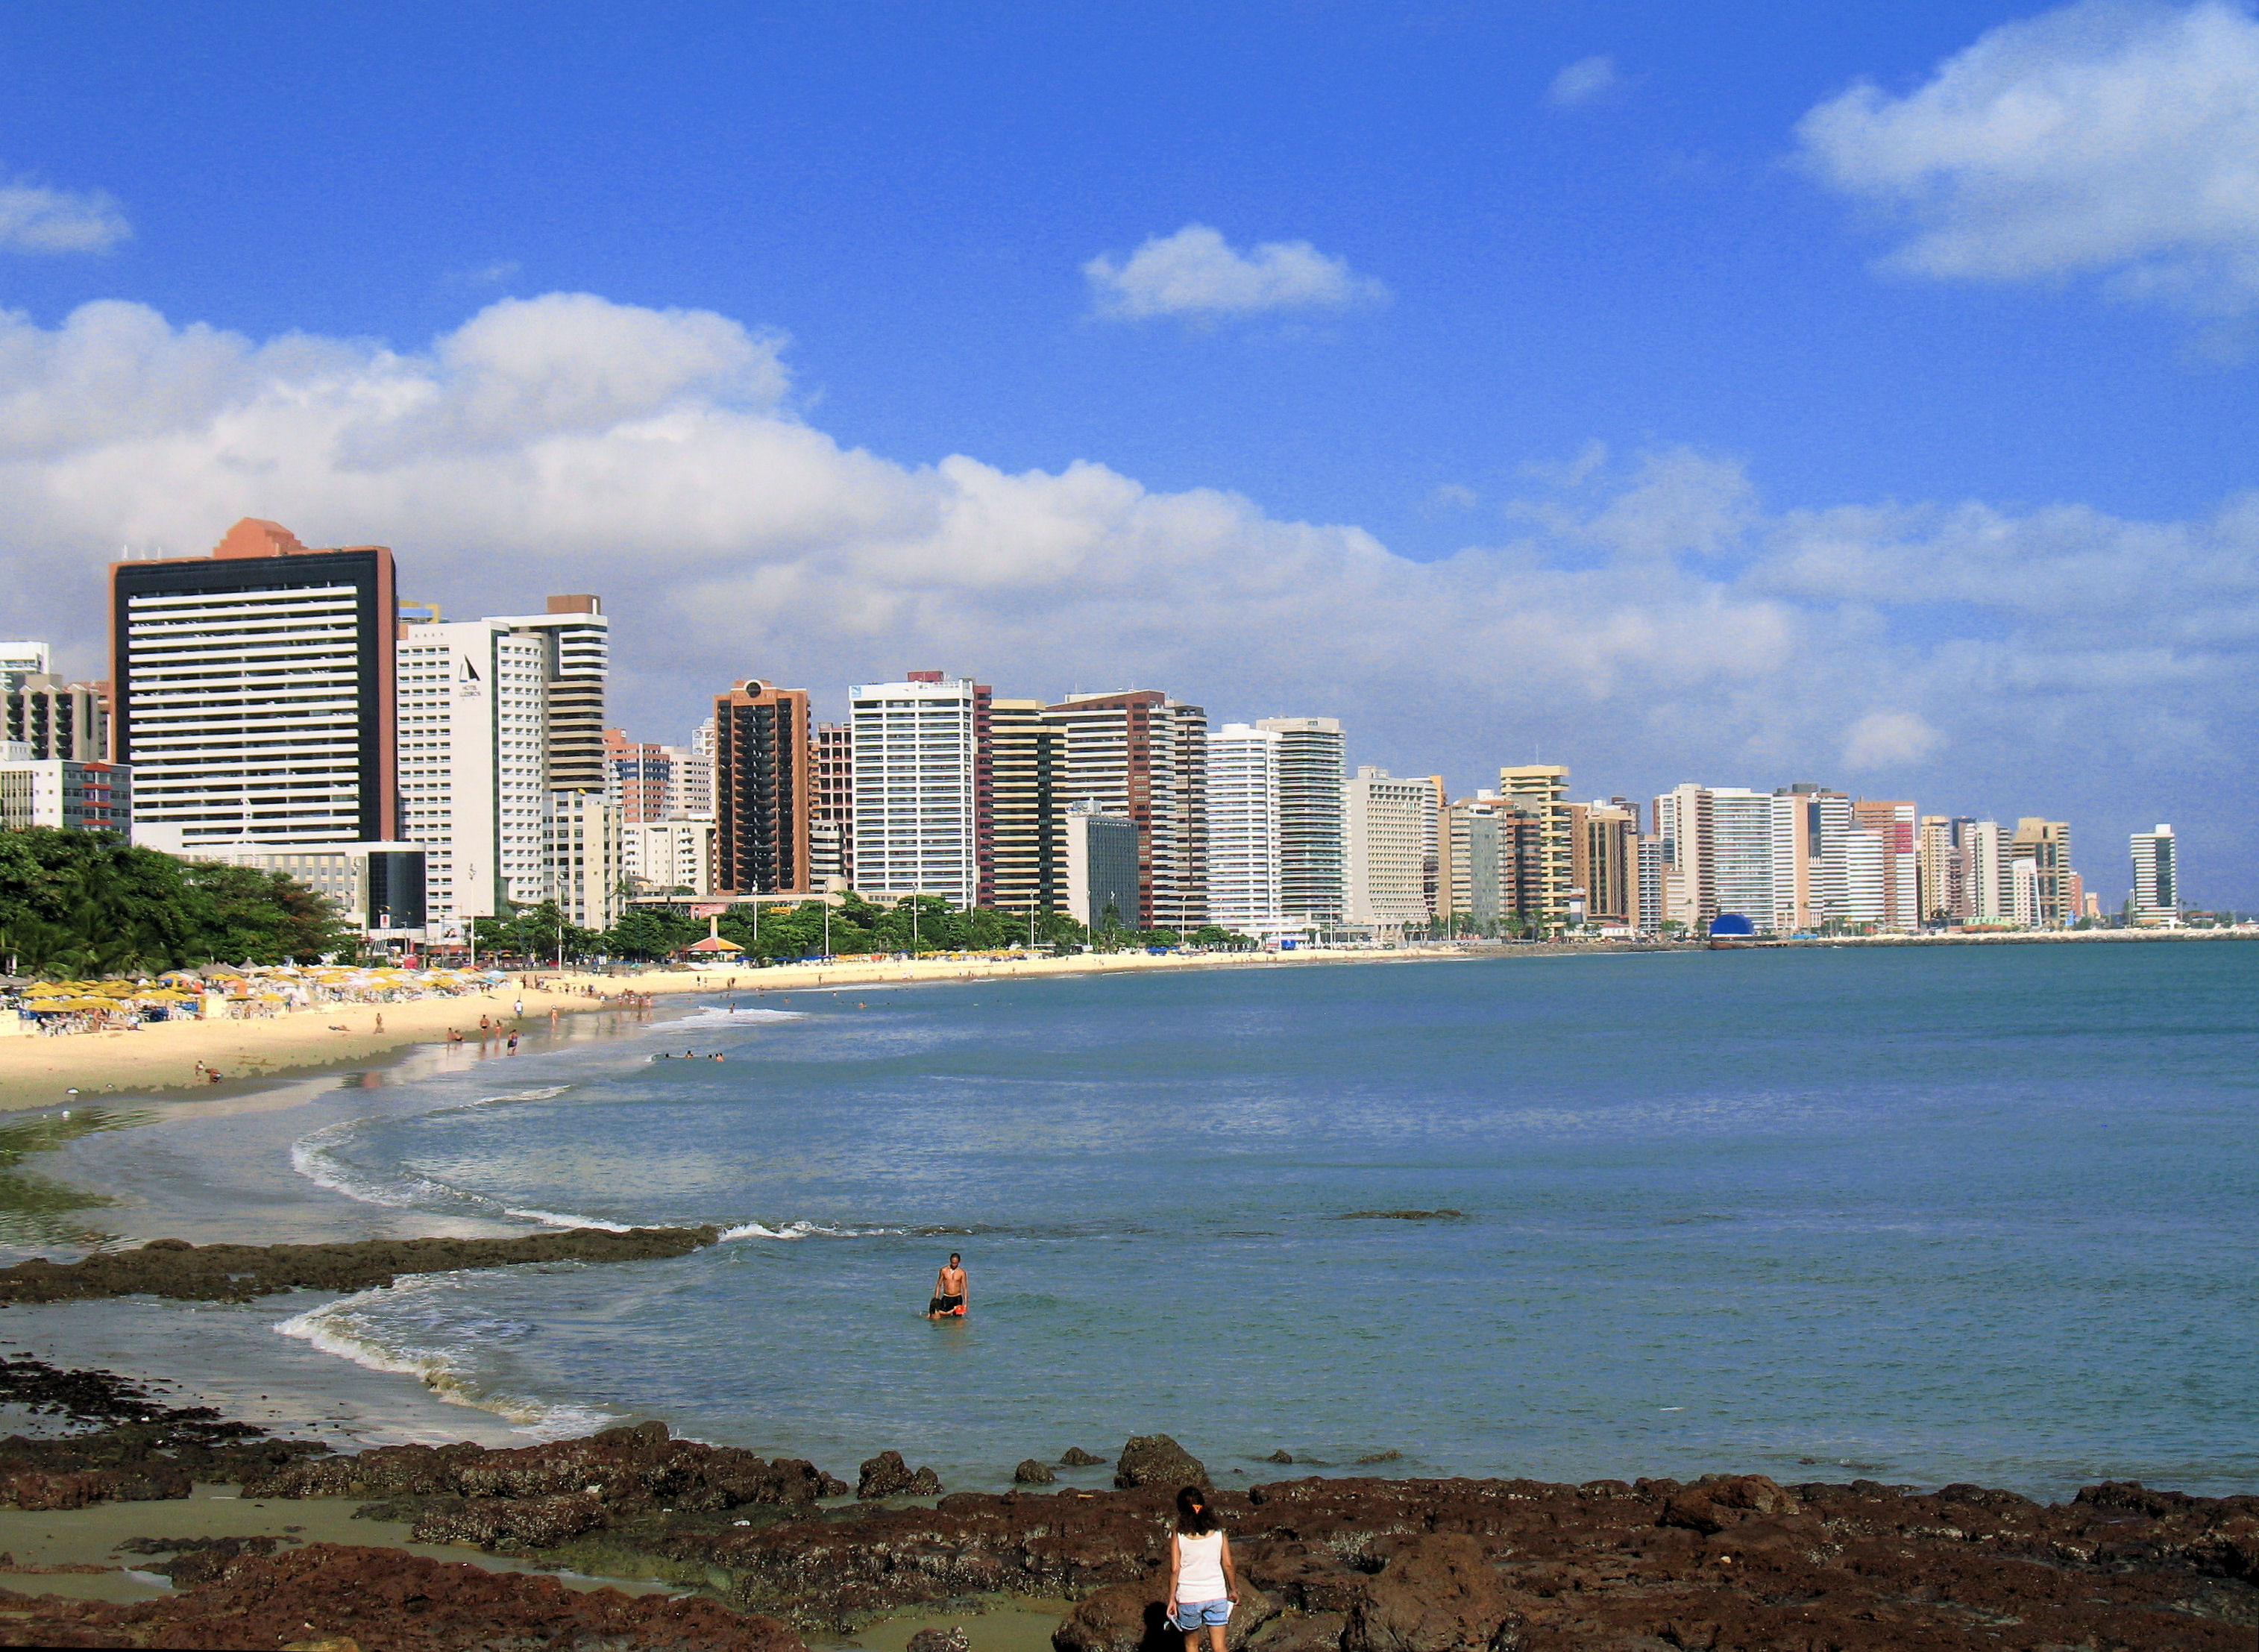 Fortaleza stands out in Brazil for its sandy beaches, blue waters, and gleaming architecture